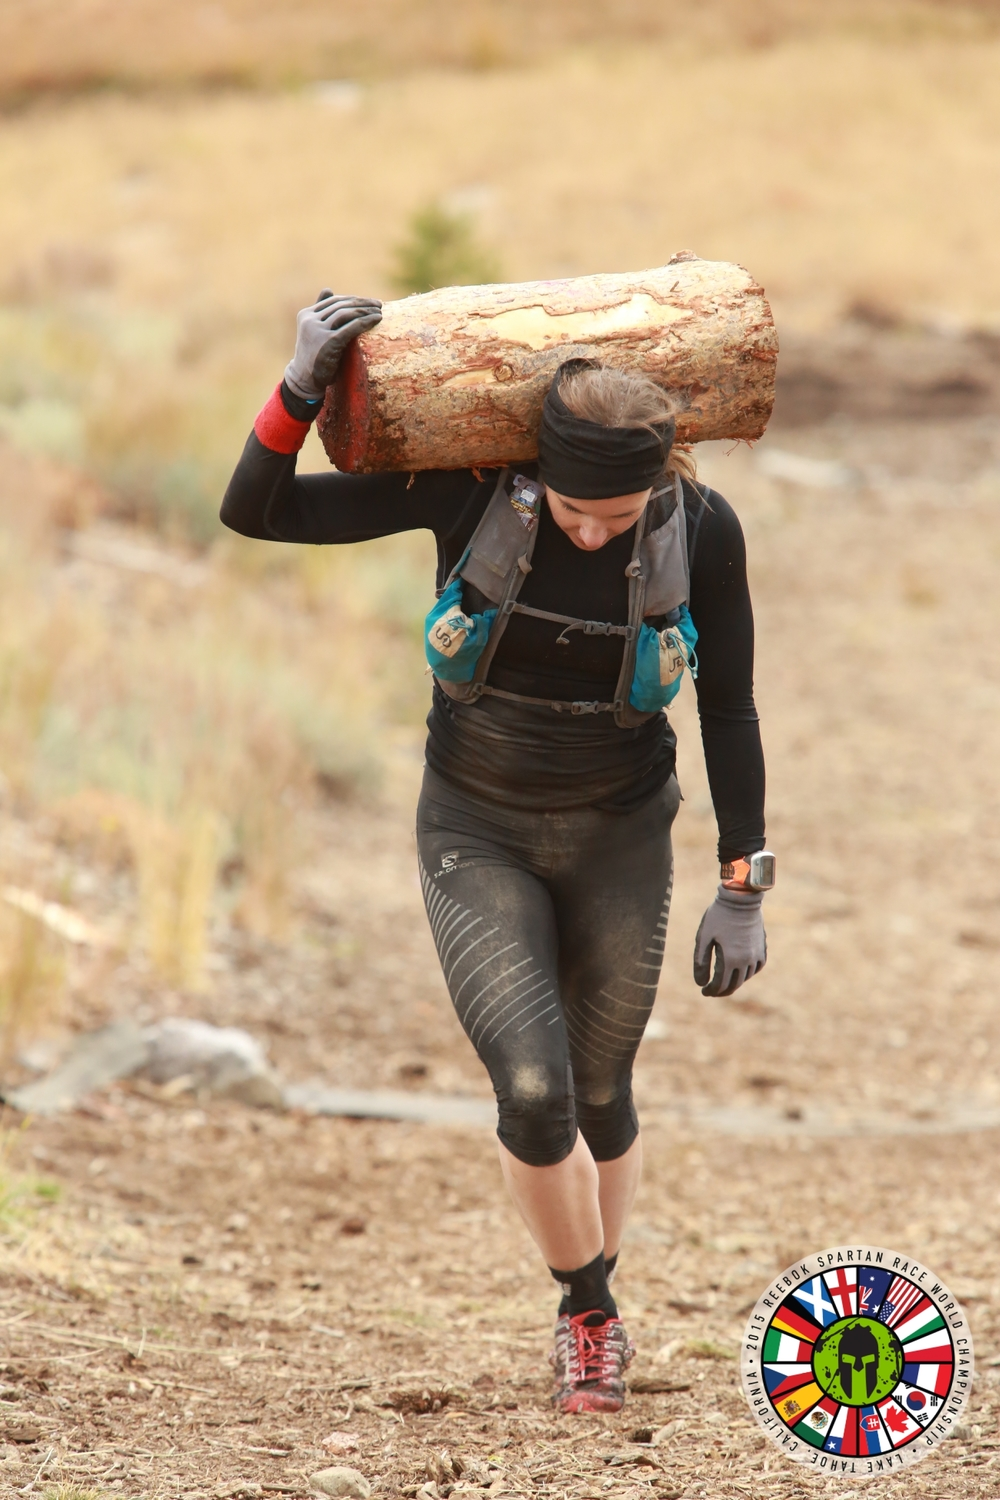 Log Carry (2nd lap)